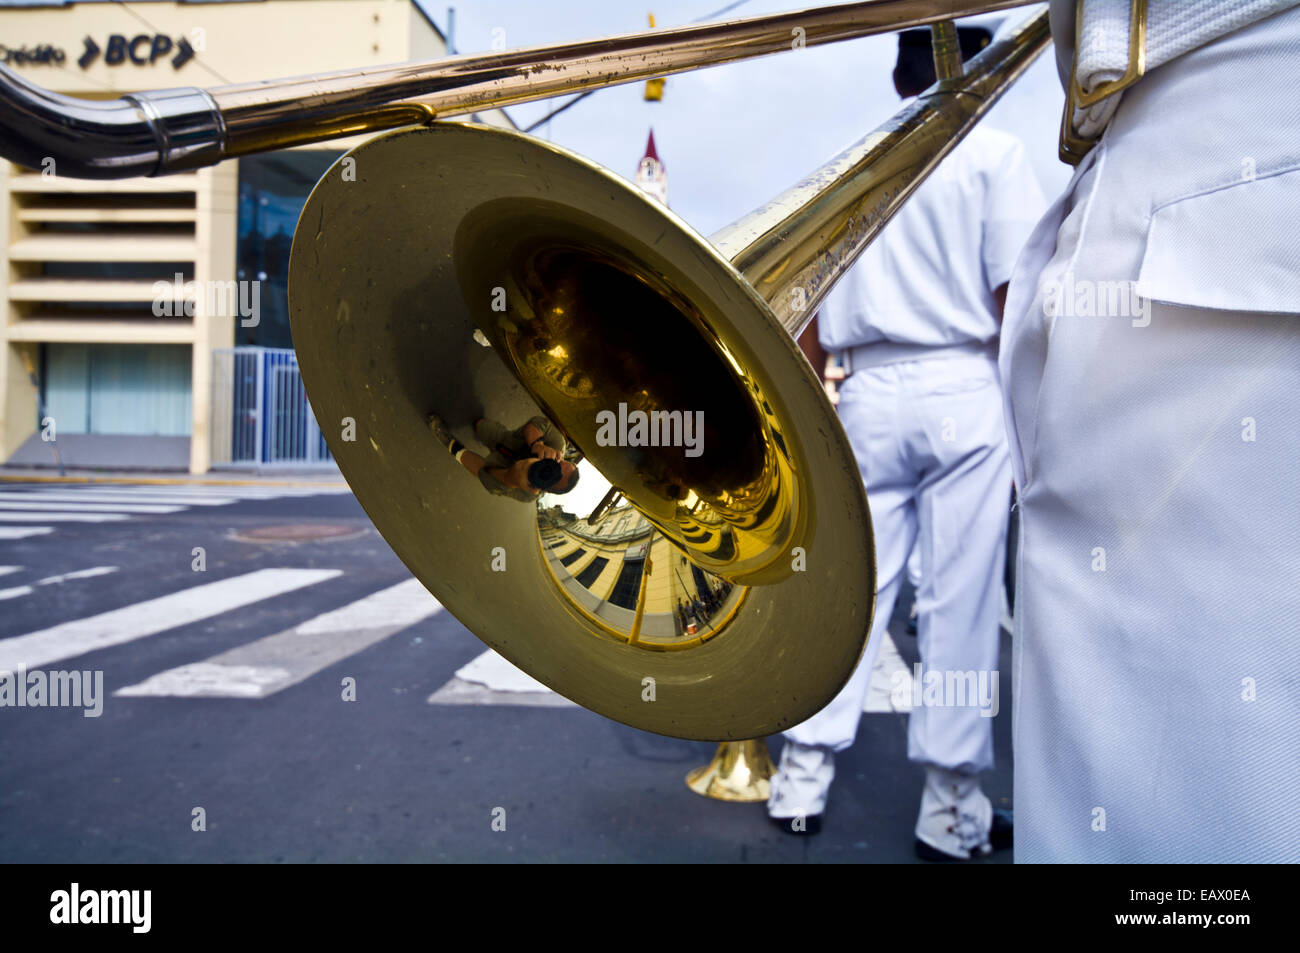 A navy band member with a brass trombone bell and slide at a military parade honoring fallen comrades. - Stock Image